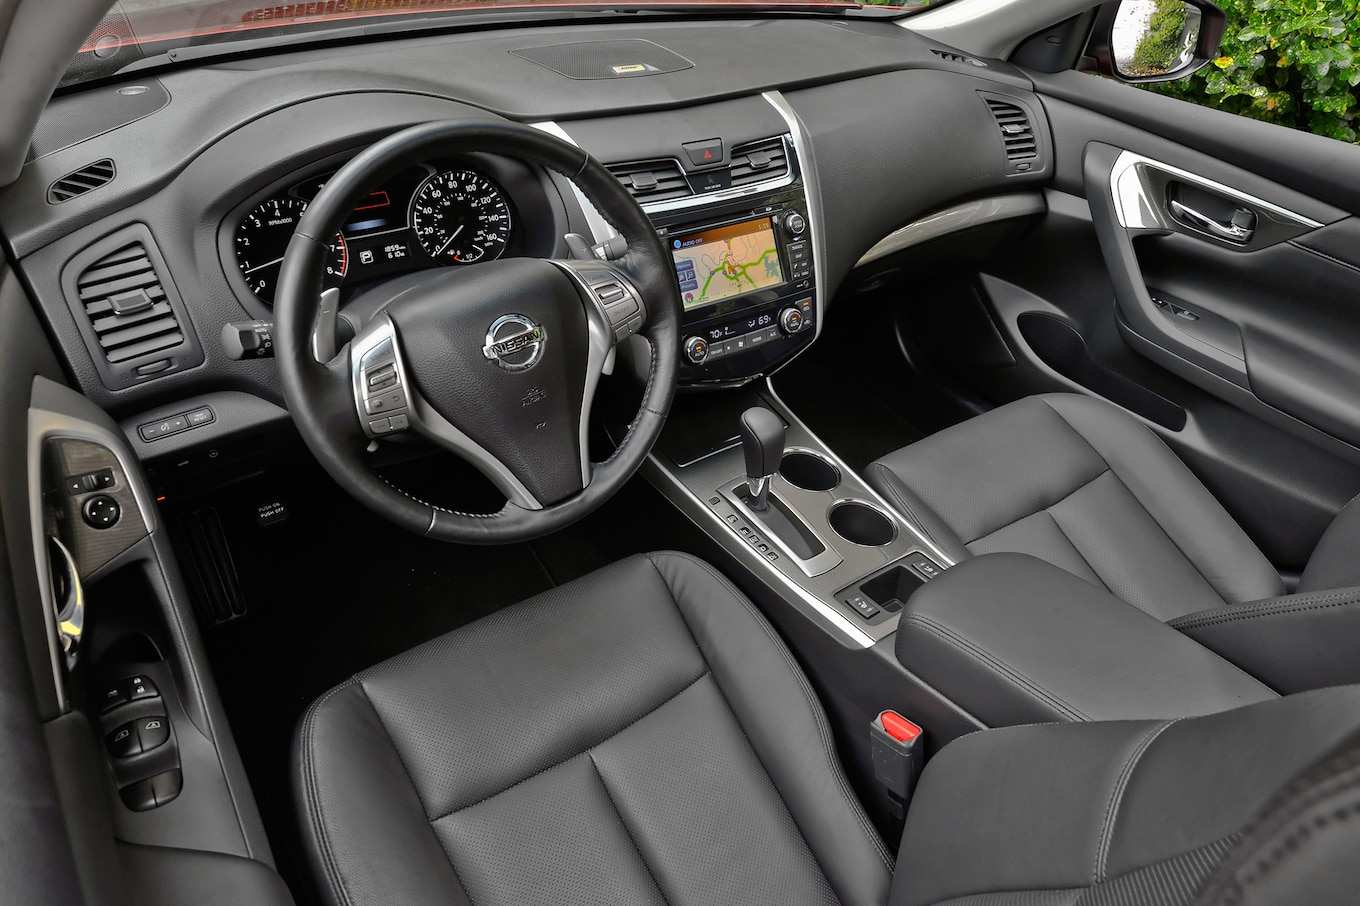 17 Best Review 2015 Nissan Altima 2 5 Specs with 2015 Nissan Altima 2 5